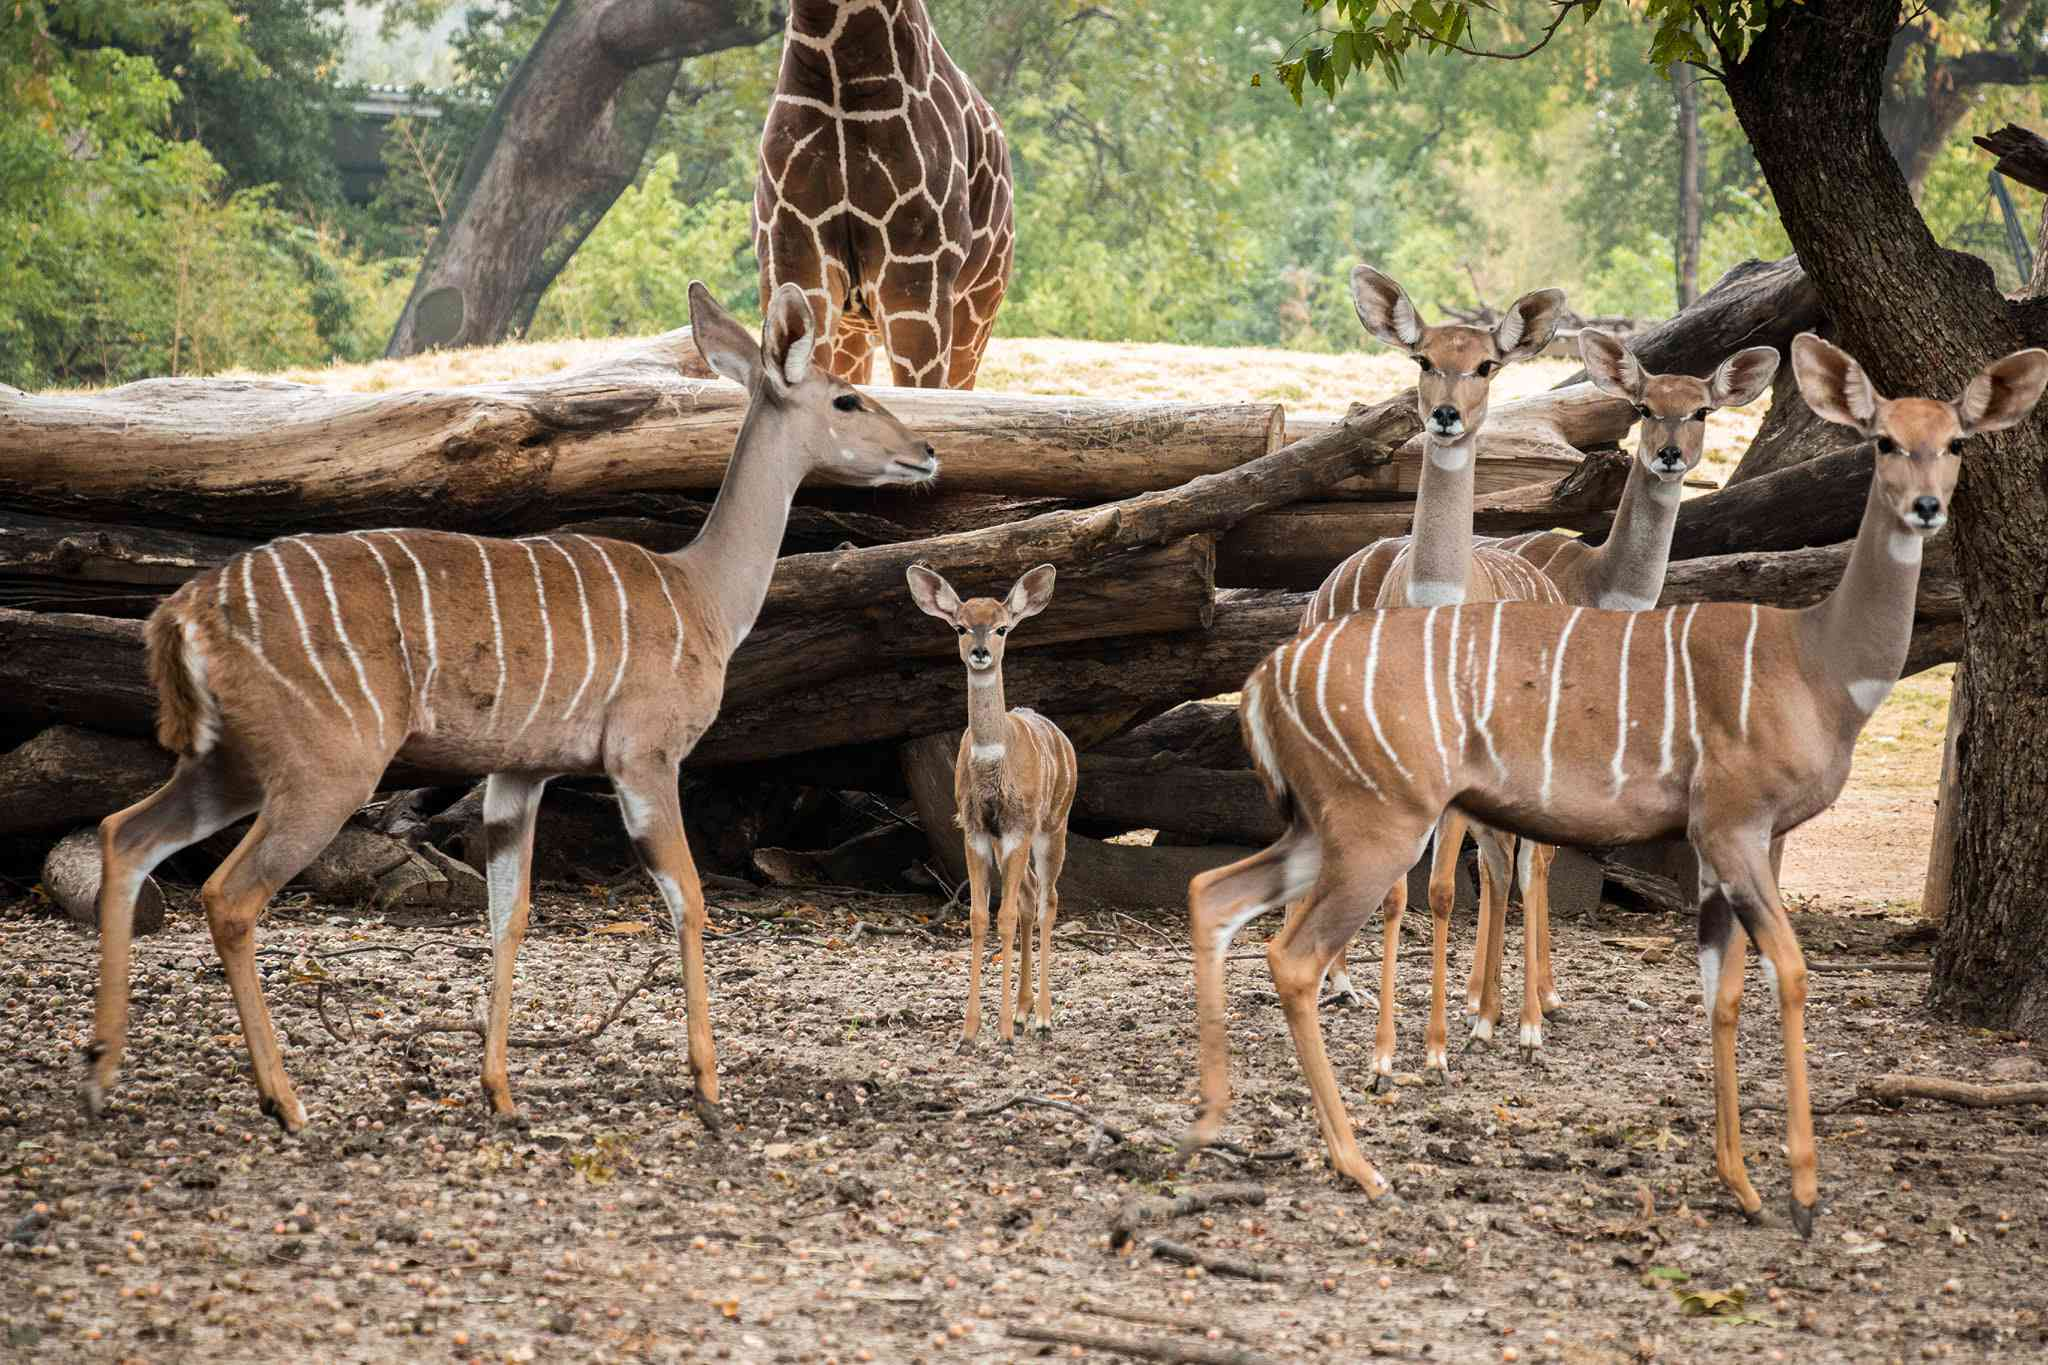 A pack of gazelle and one giraffe in the background